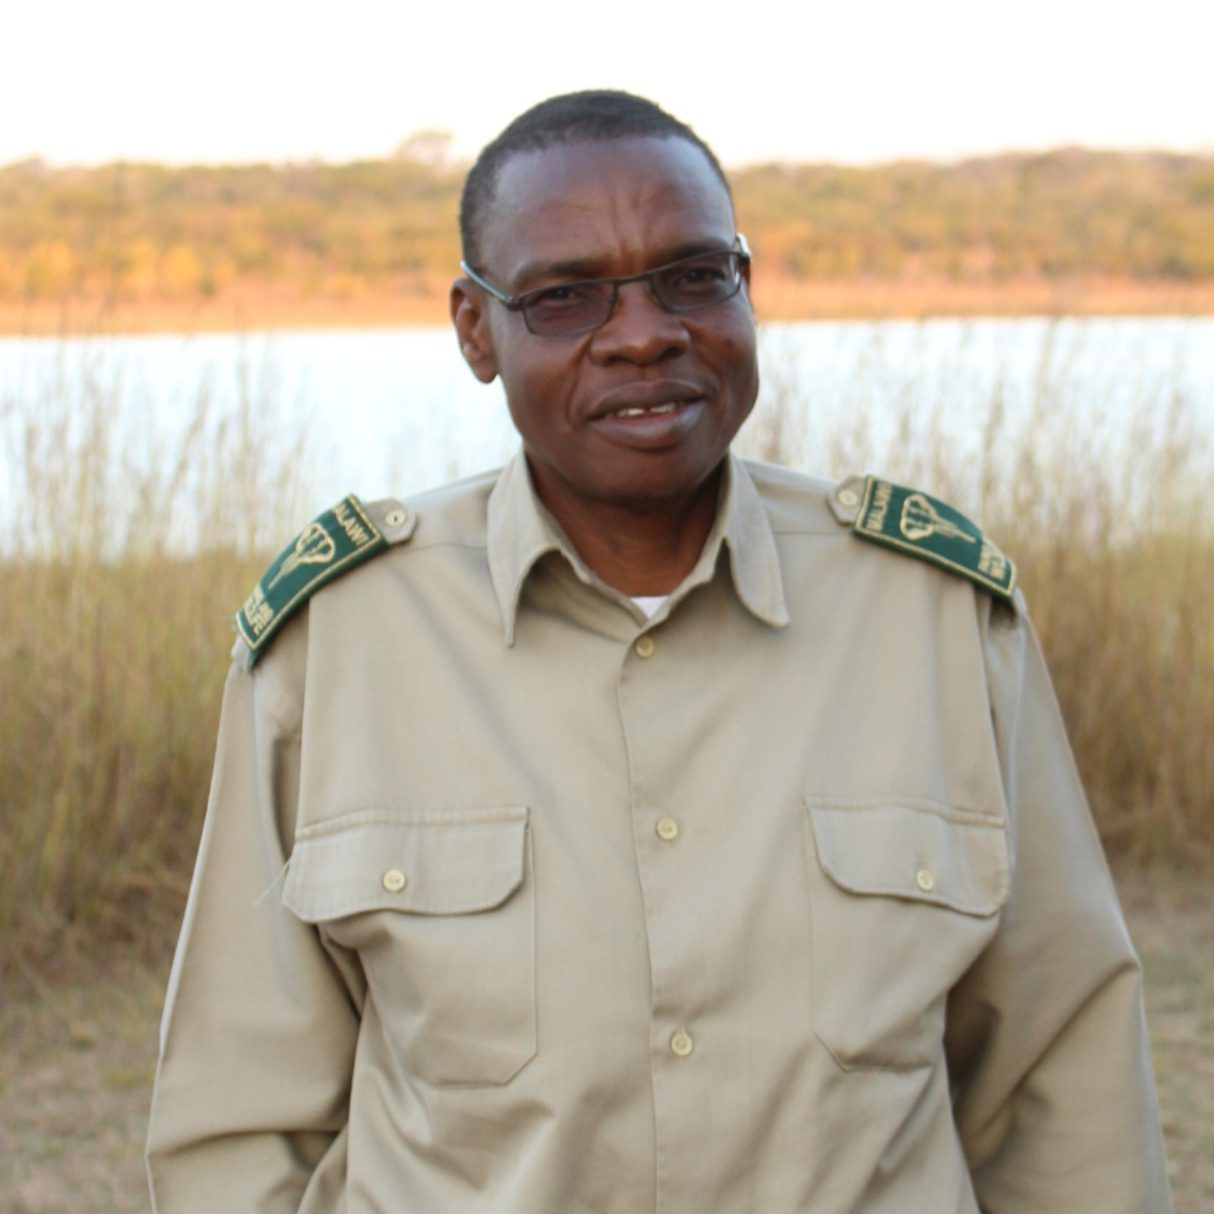 Brighton Kumchedwa | 2017 Tusk Award for Conservation in Africa, Winner